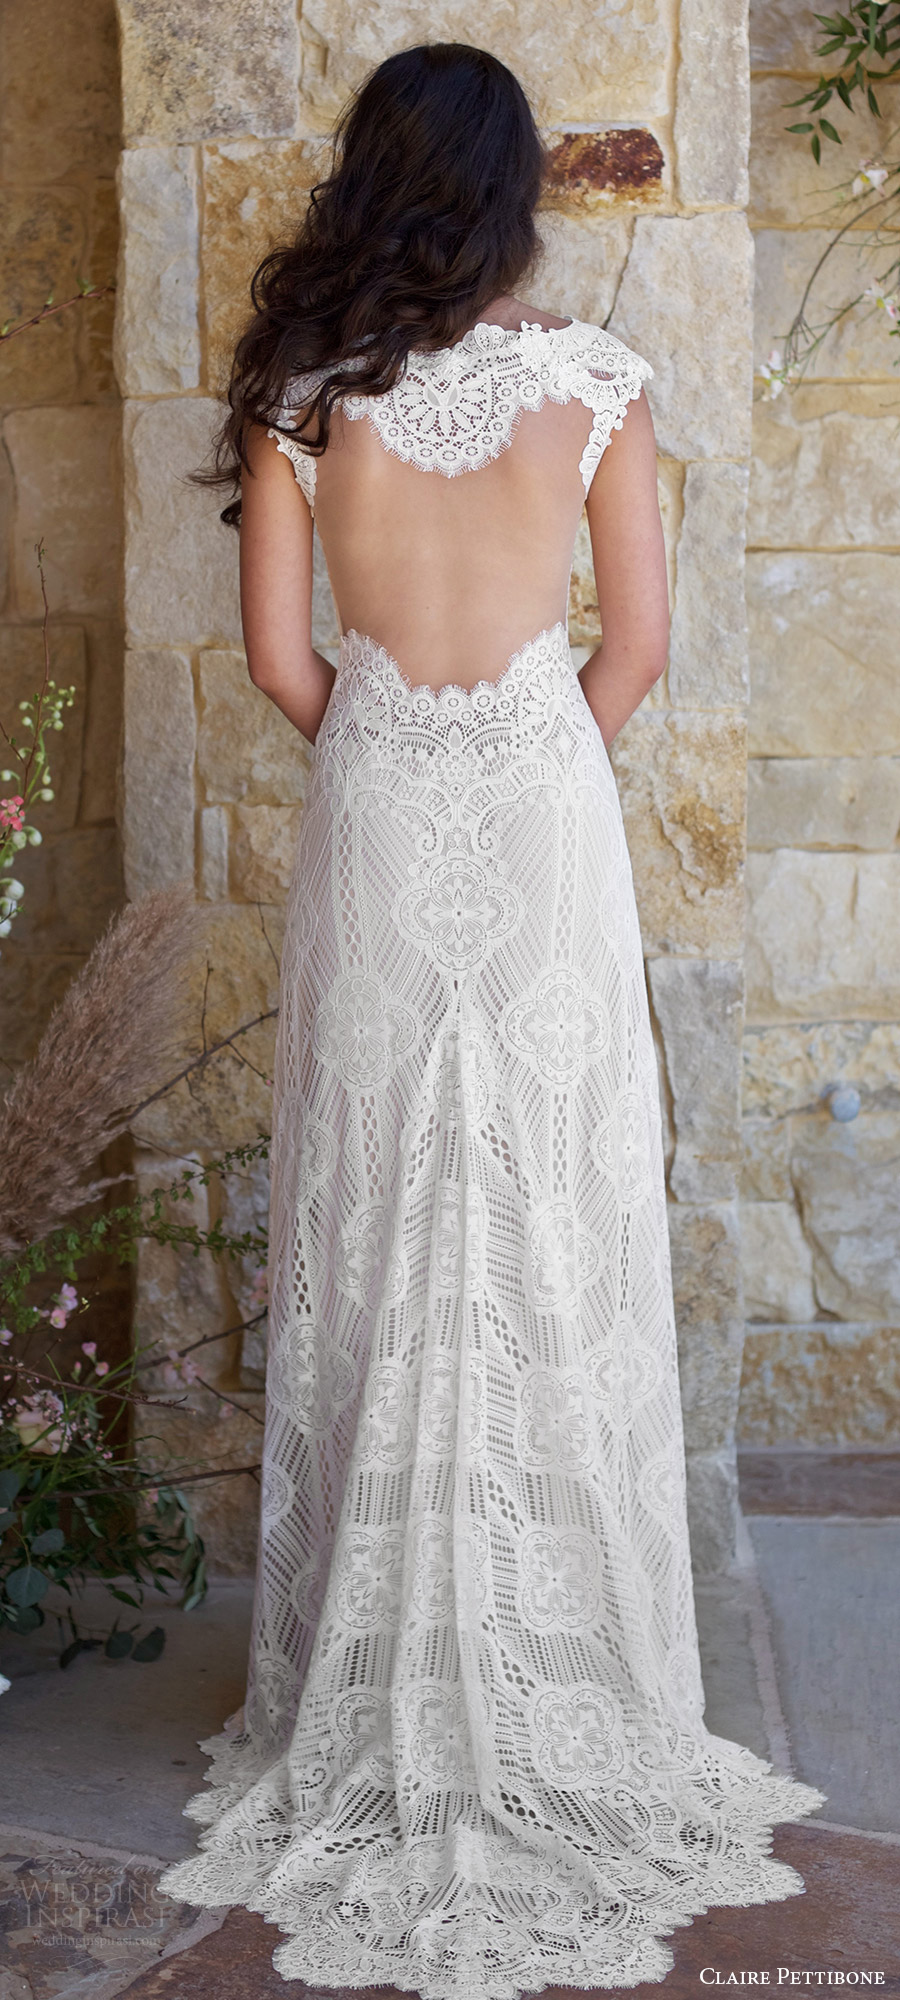 claire pettibone spring 2018 bridal cap sleeve sweetheart lace trumpet wedding dress (calistoga) bv illusion back train boho romantic